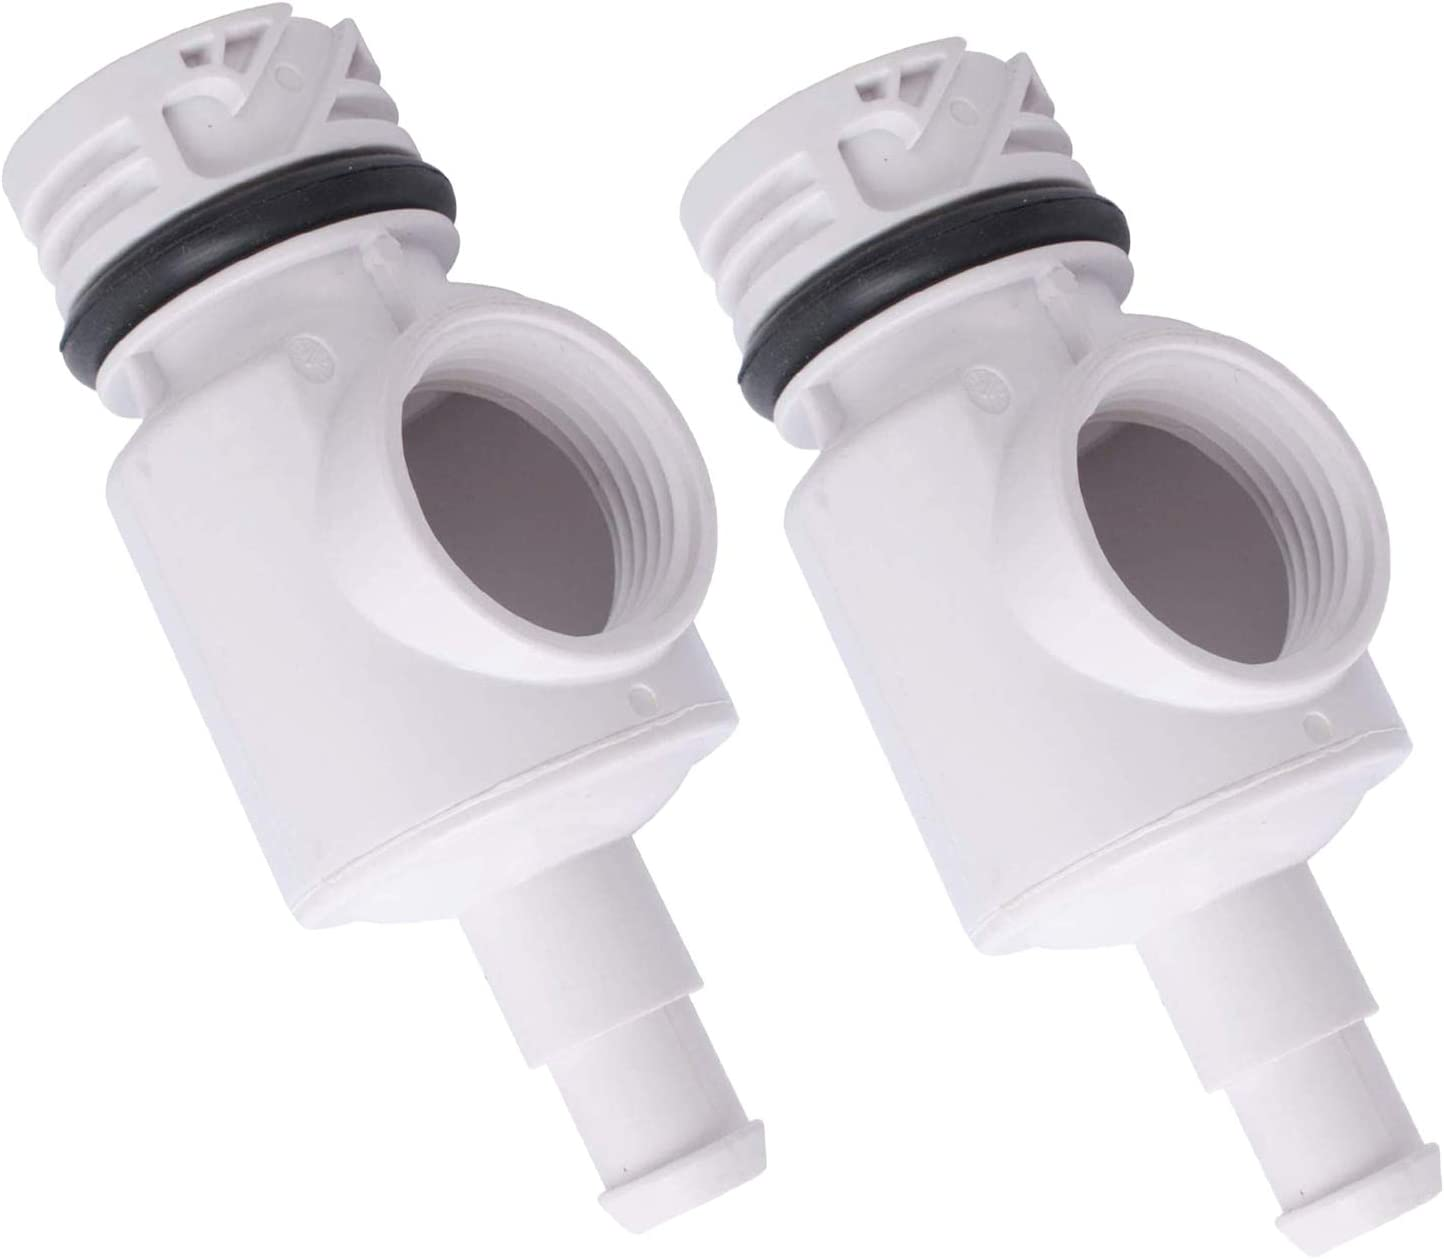 Waddy D29 UWF Universal Wall Fitting Quick Disconnect Replacerment for Polaris 180 280 380 Automatic Pool Cleaners